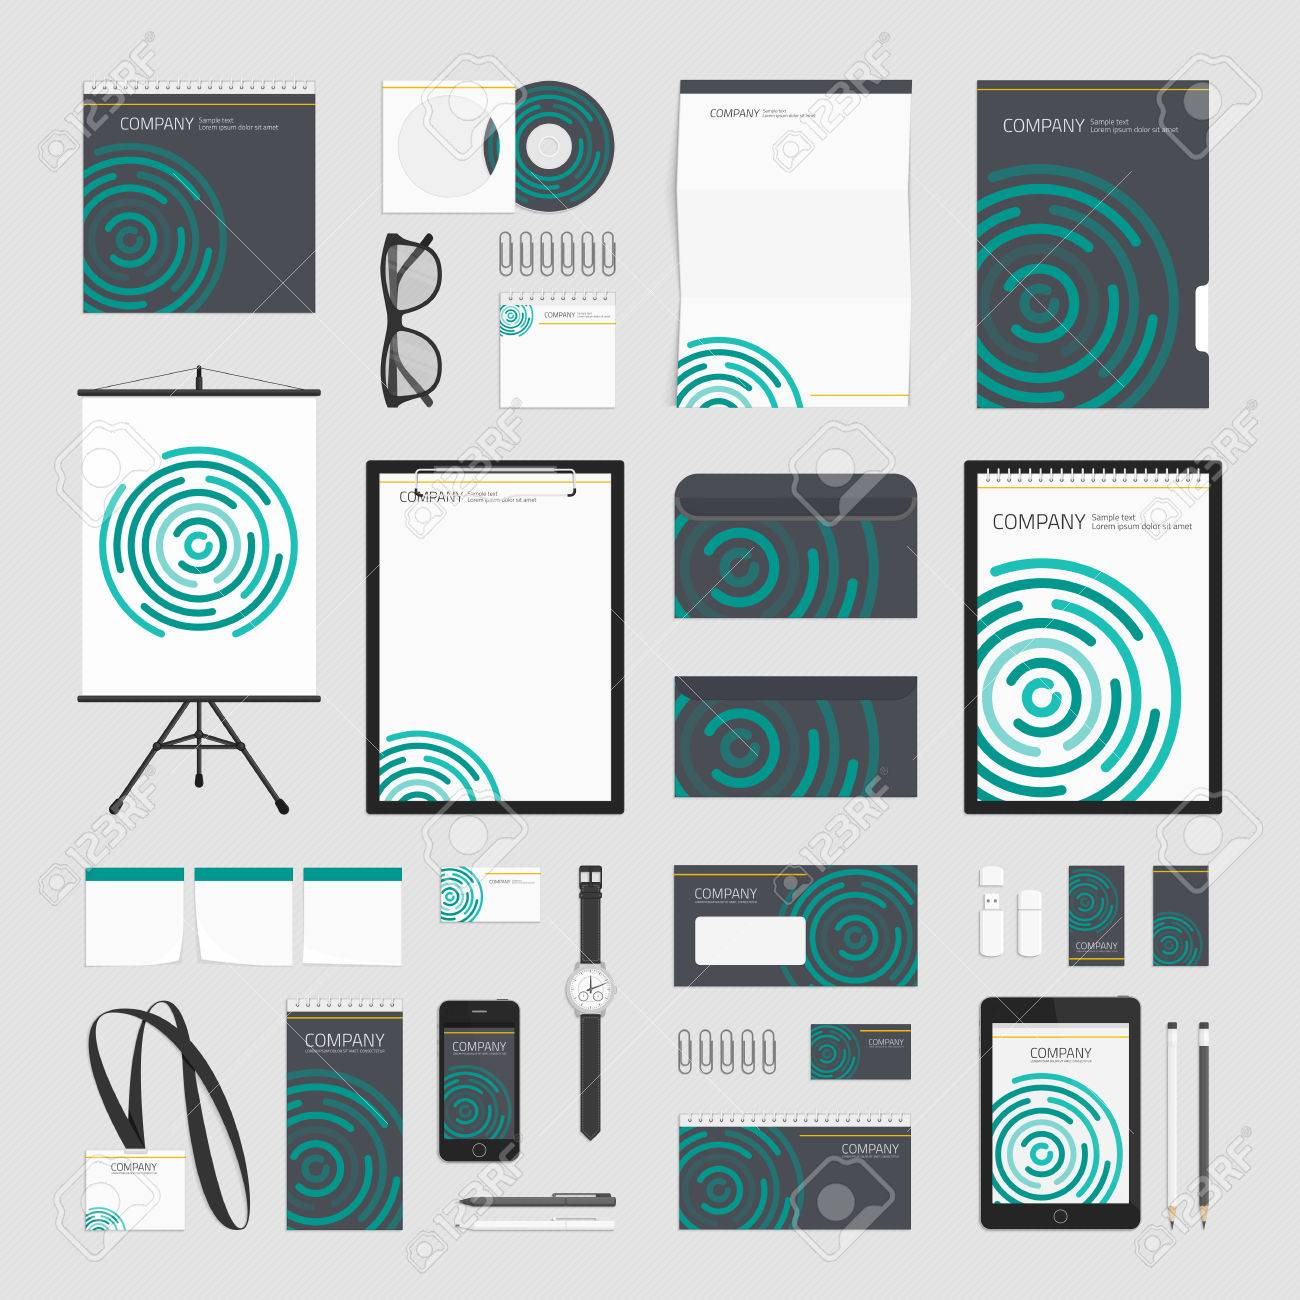 Circular ripple wave corporate identity template vector company circular ripple wave corporate identity template vector company style for brand book or guideline spiritdancerdesigns Image collections